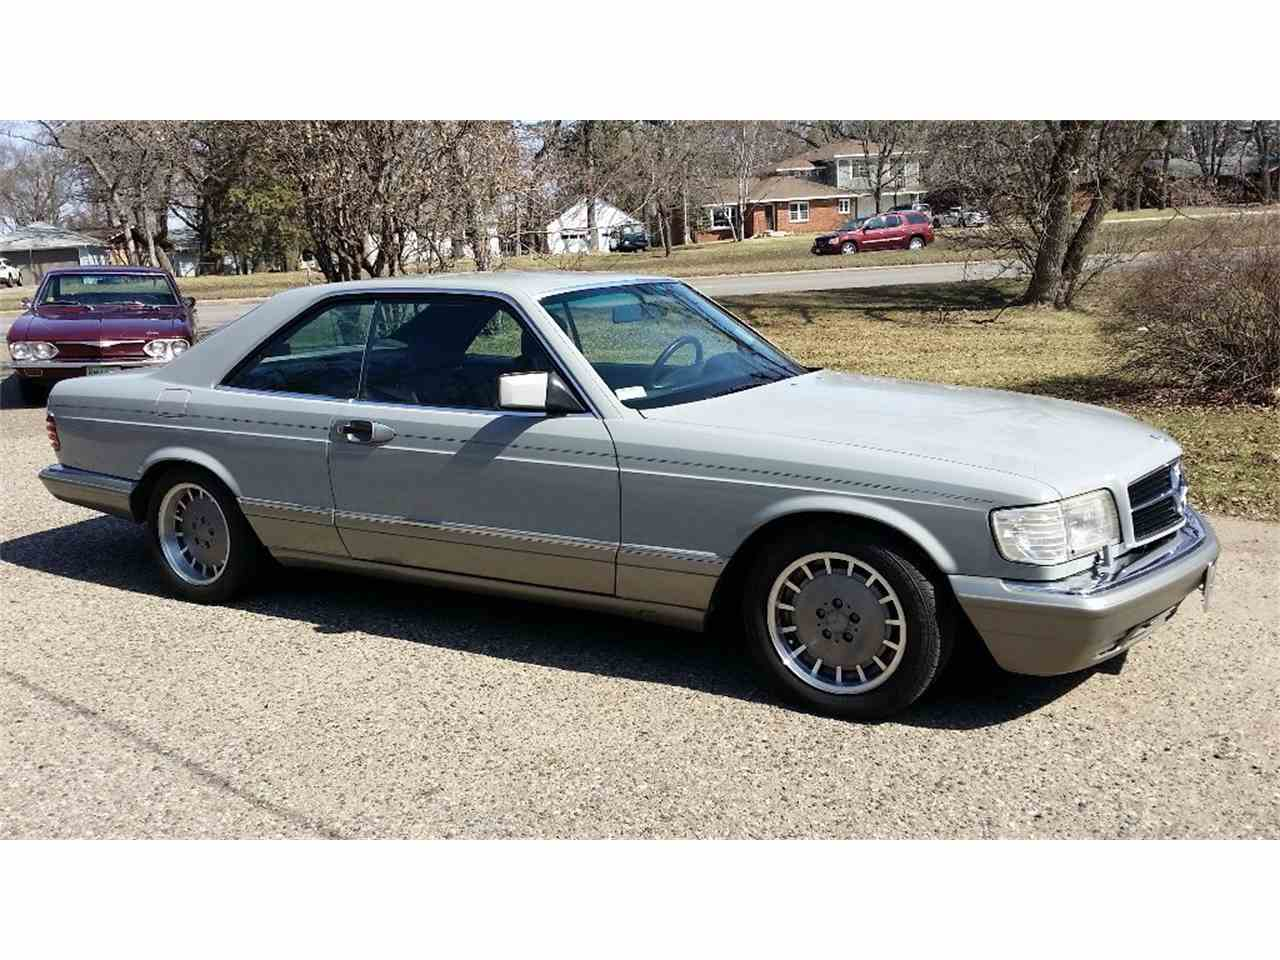 Large Picture of 1987 Mercedes-Benz 560SEC located in Minnesota - $13,000.00 Offered by Classic Rides and Rods - EGAK